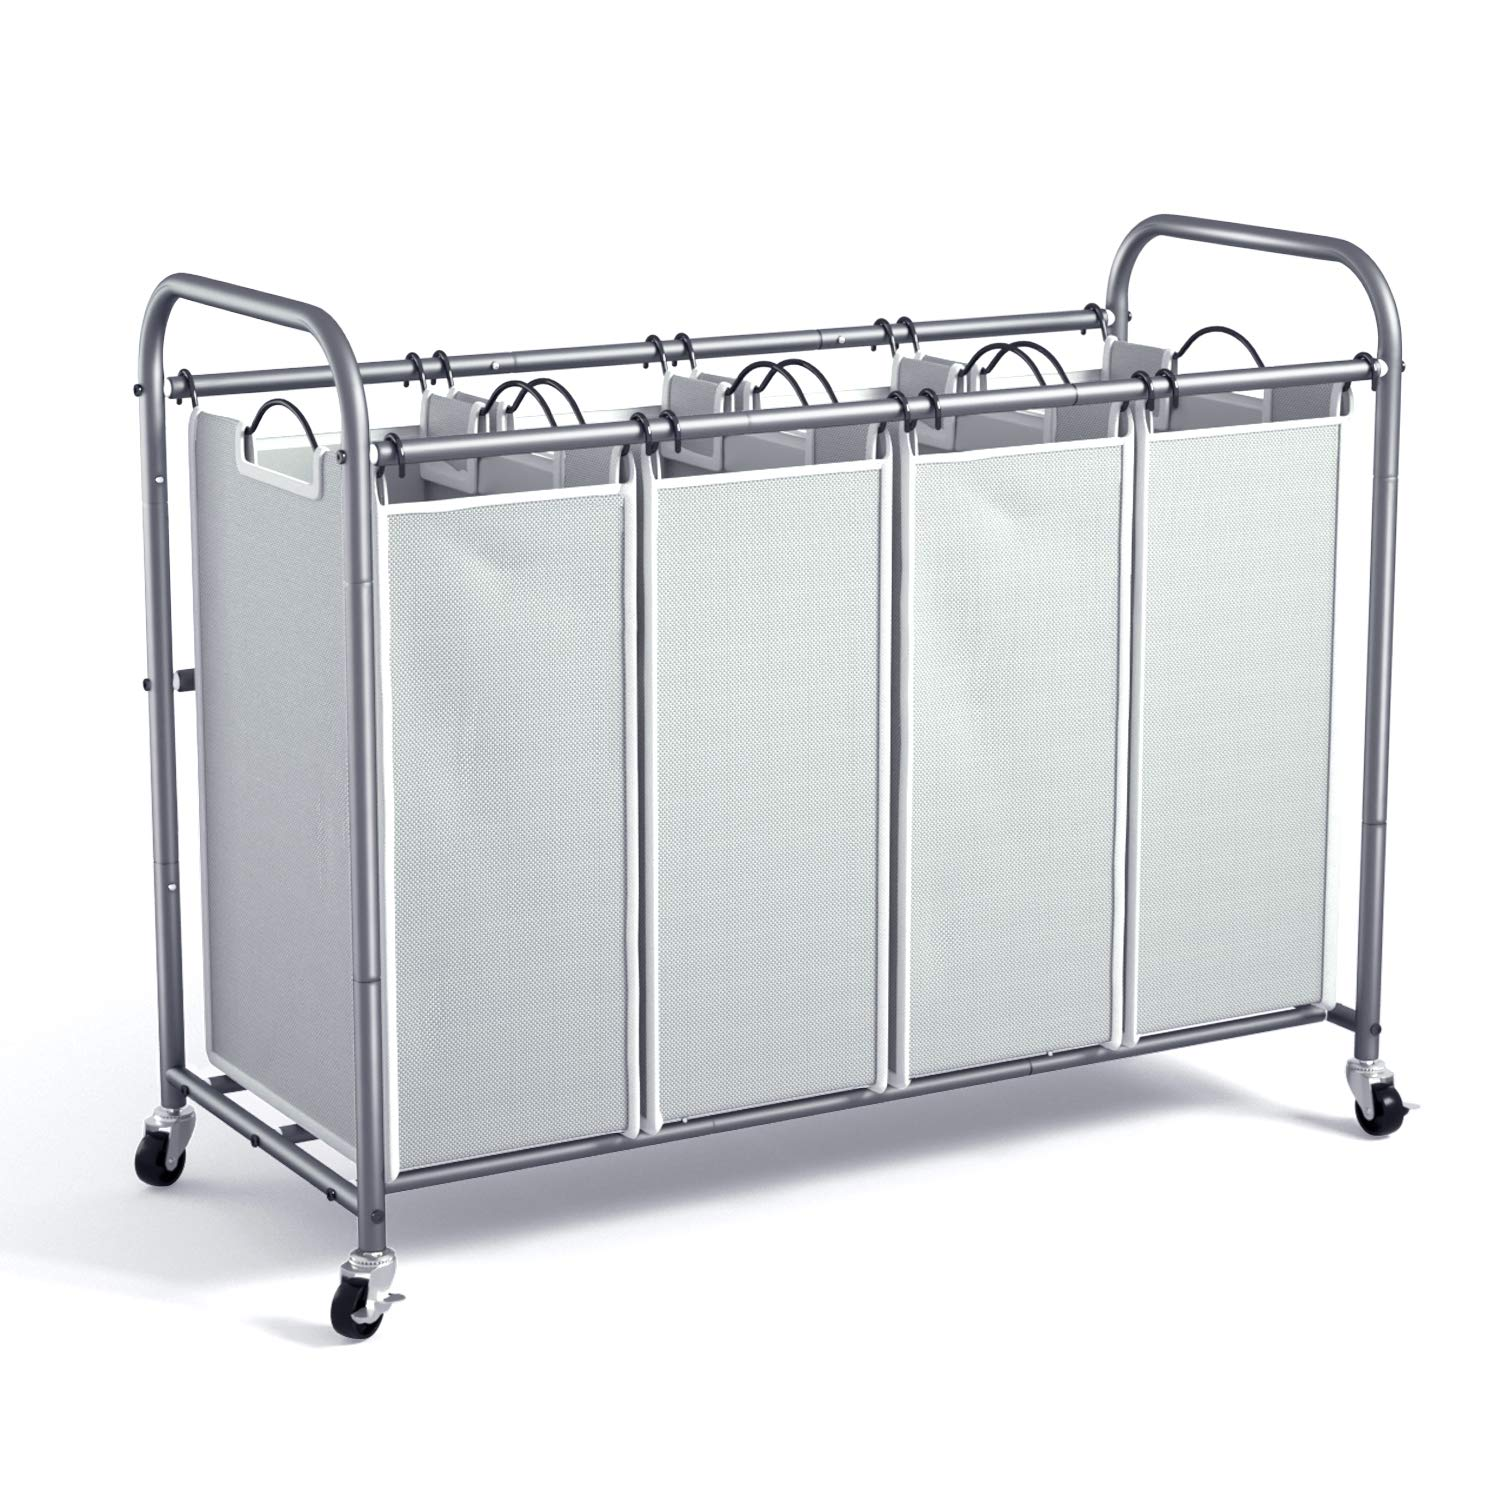 WeHome Laundry Rolling Clothes Storage